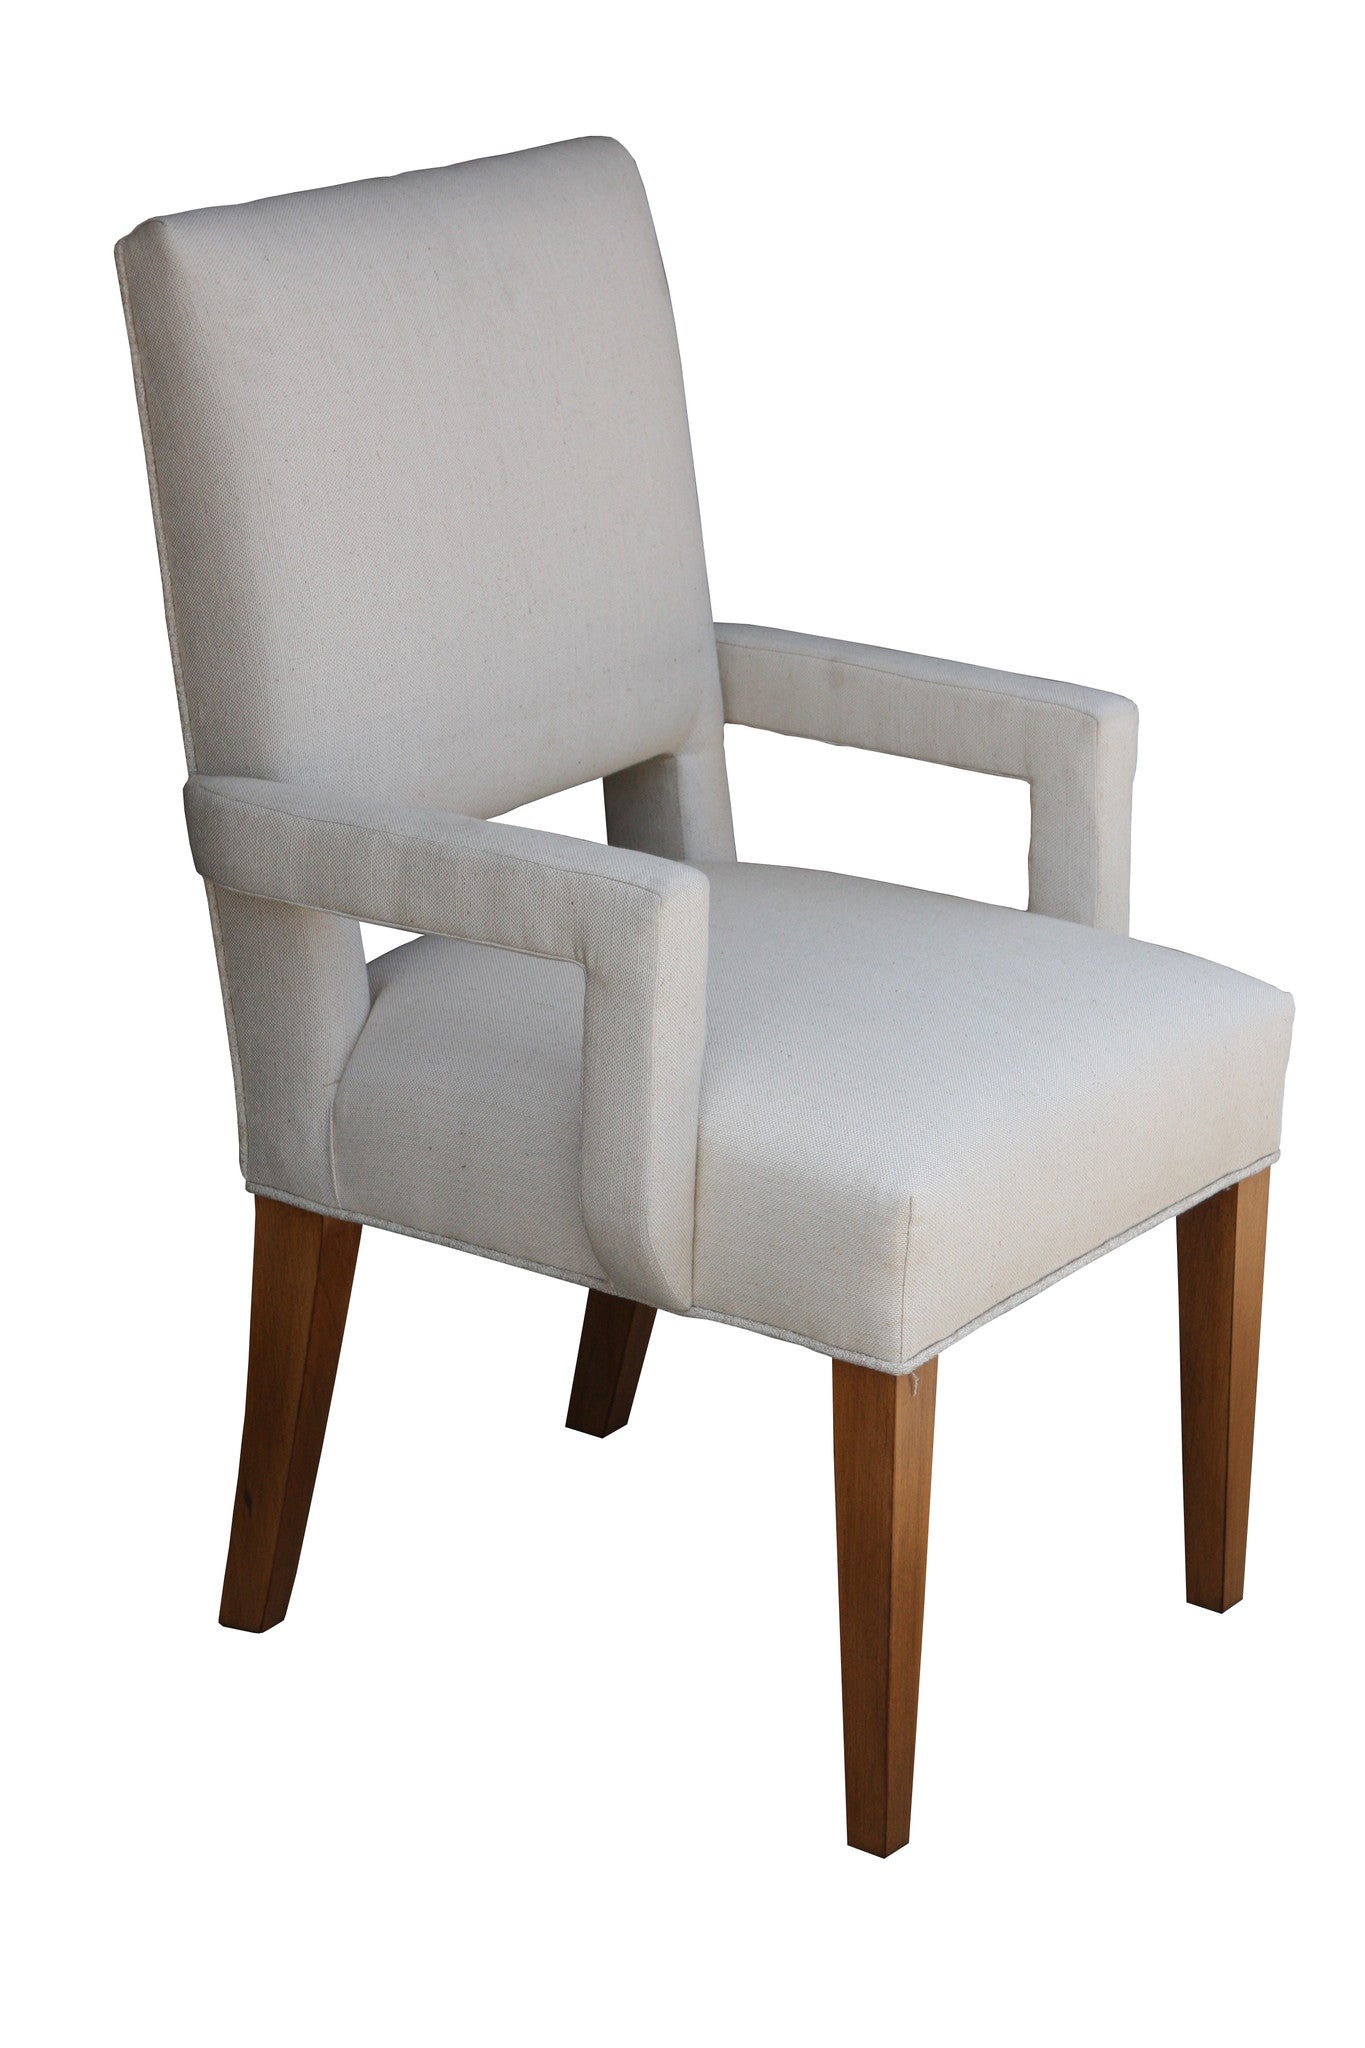 Picture of: Essex Dining Room Arm Chair Mortise Tenon